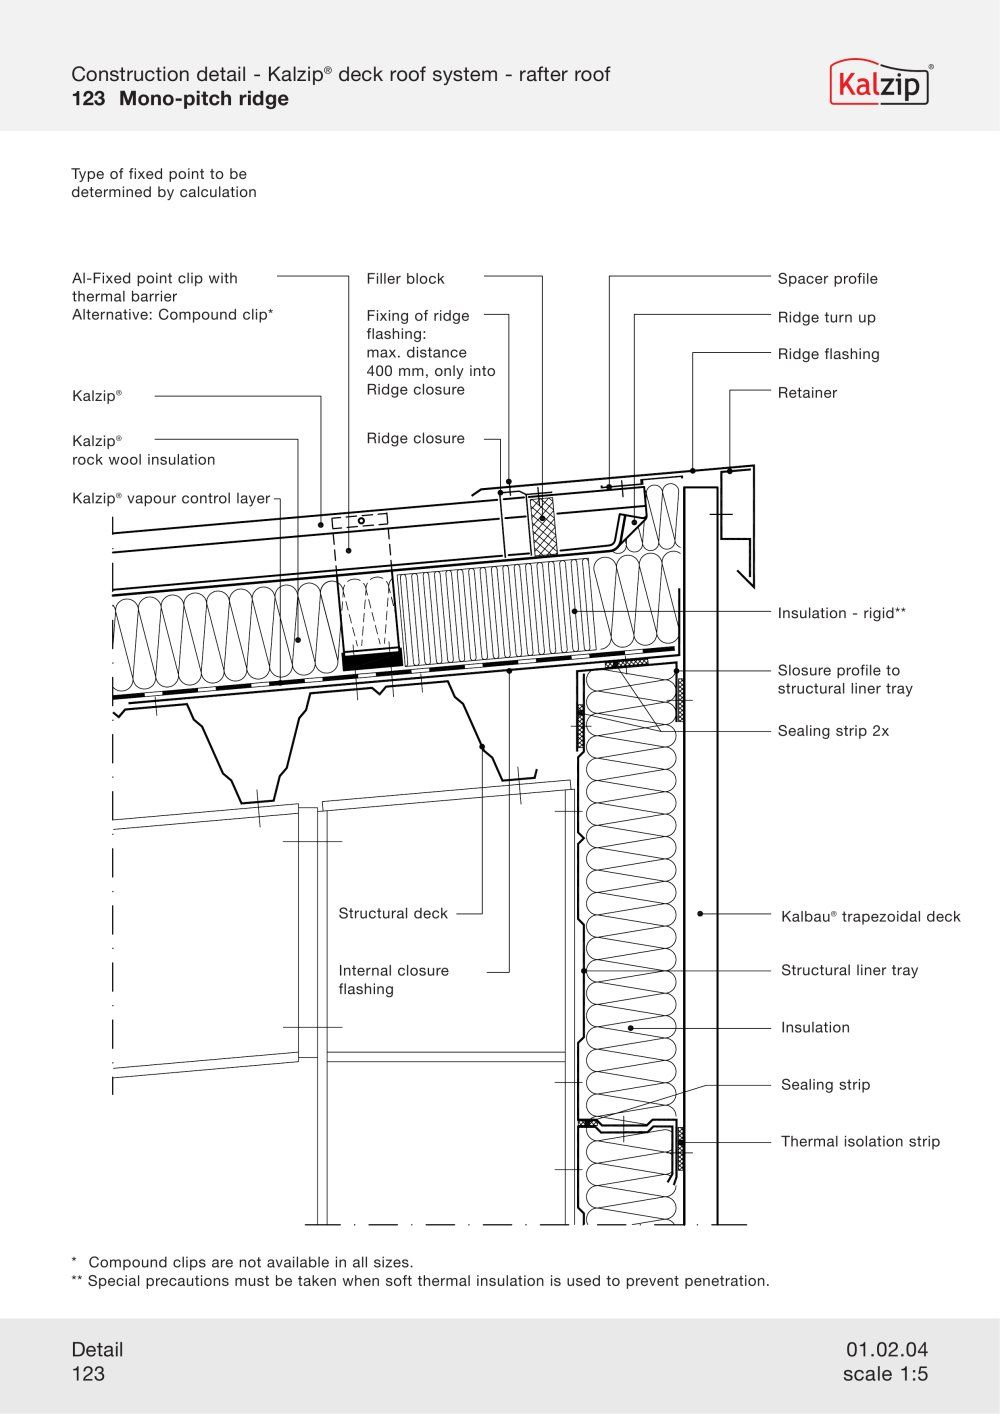 how to read construction drawings pdf